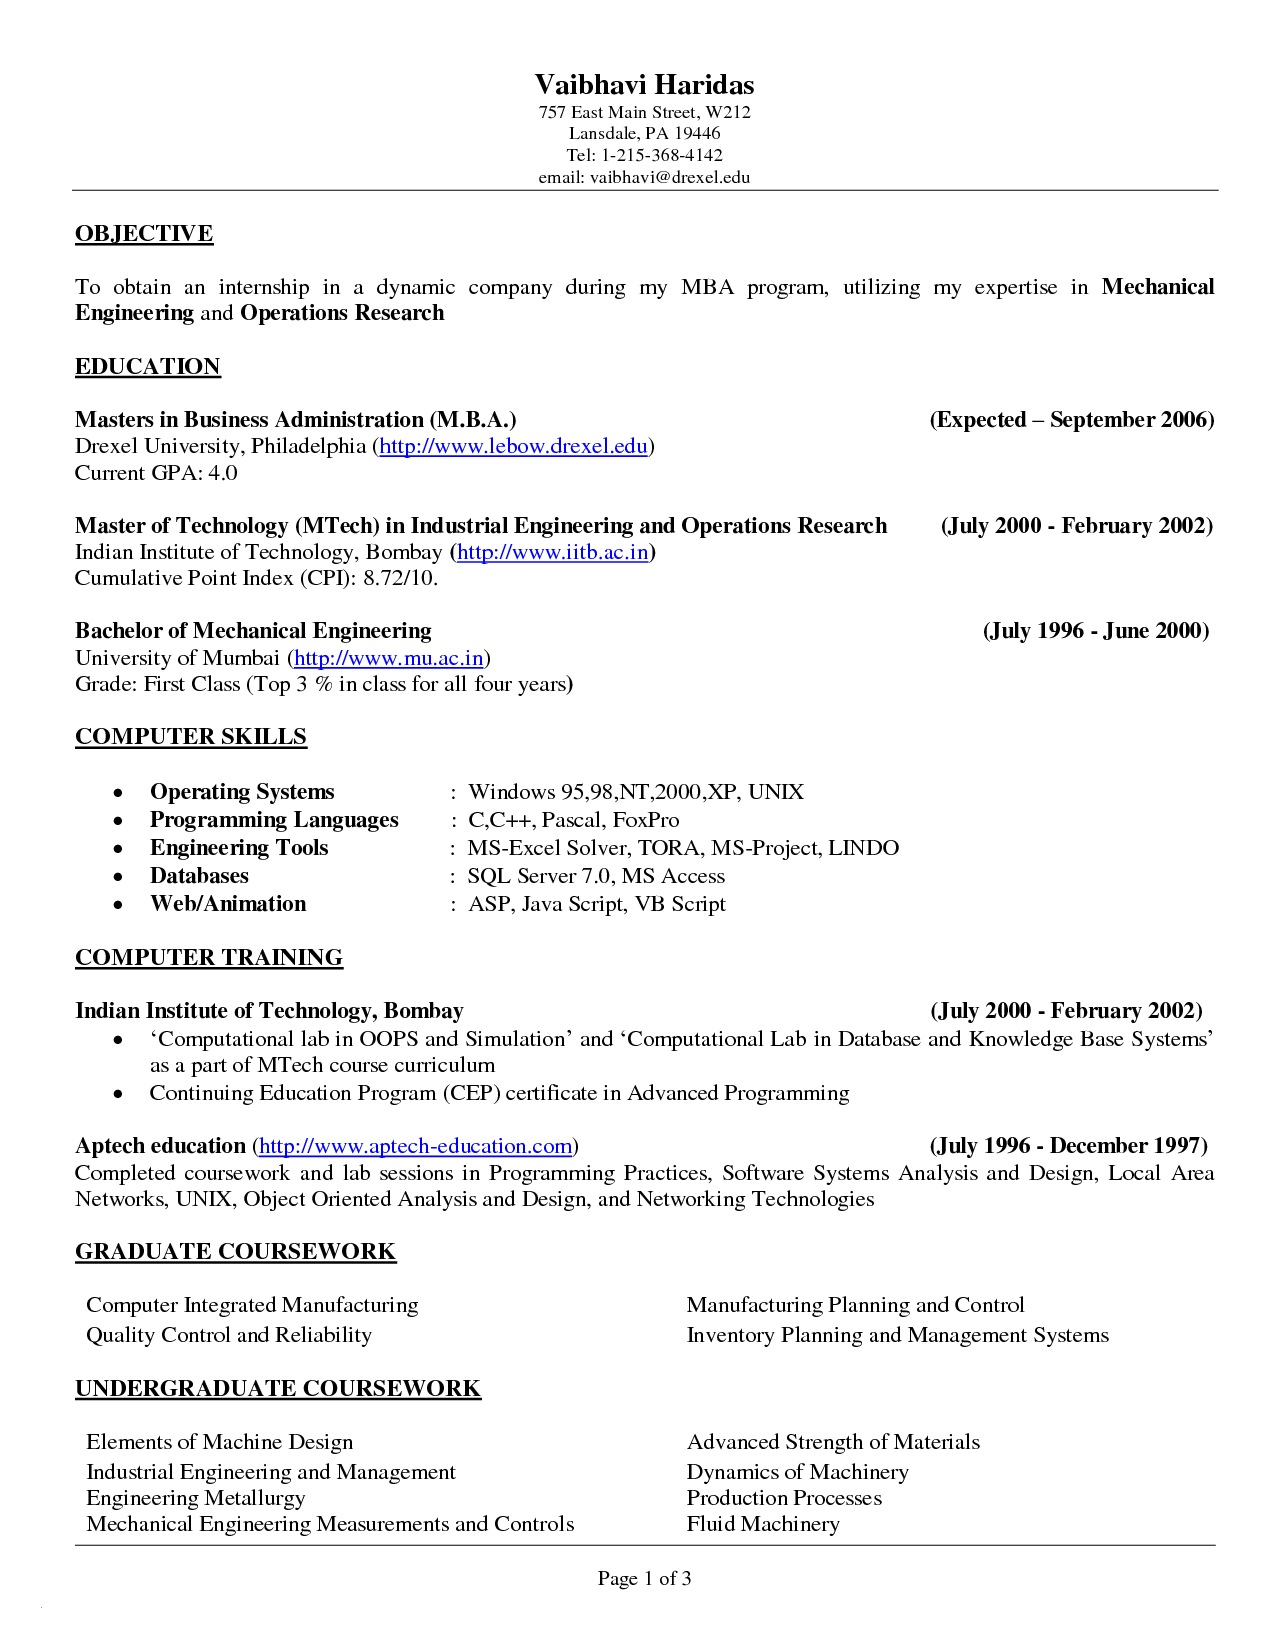 Mechanical Engineering Student Resume - Mechanical Engineering Student Resume Examples Inspirational Awesome